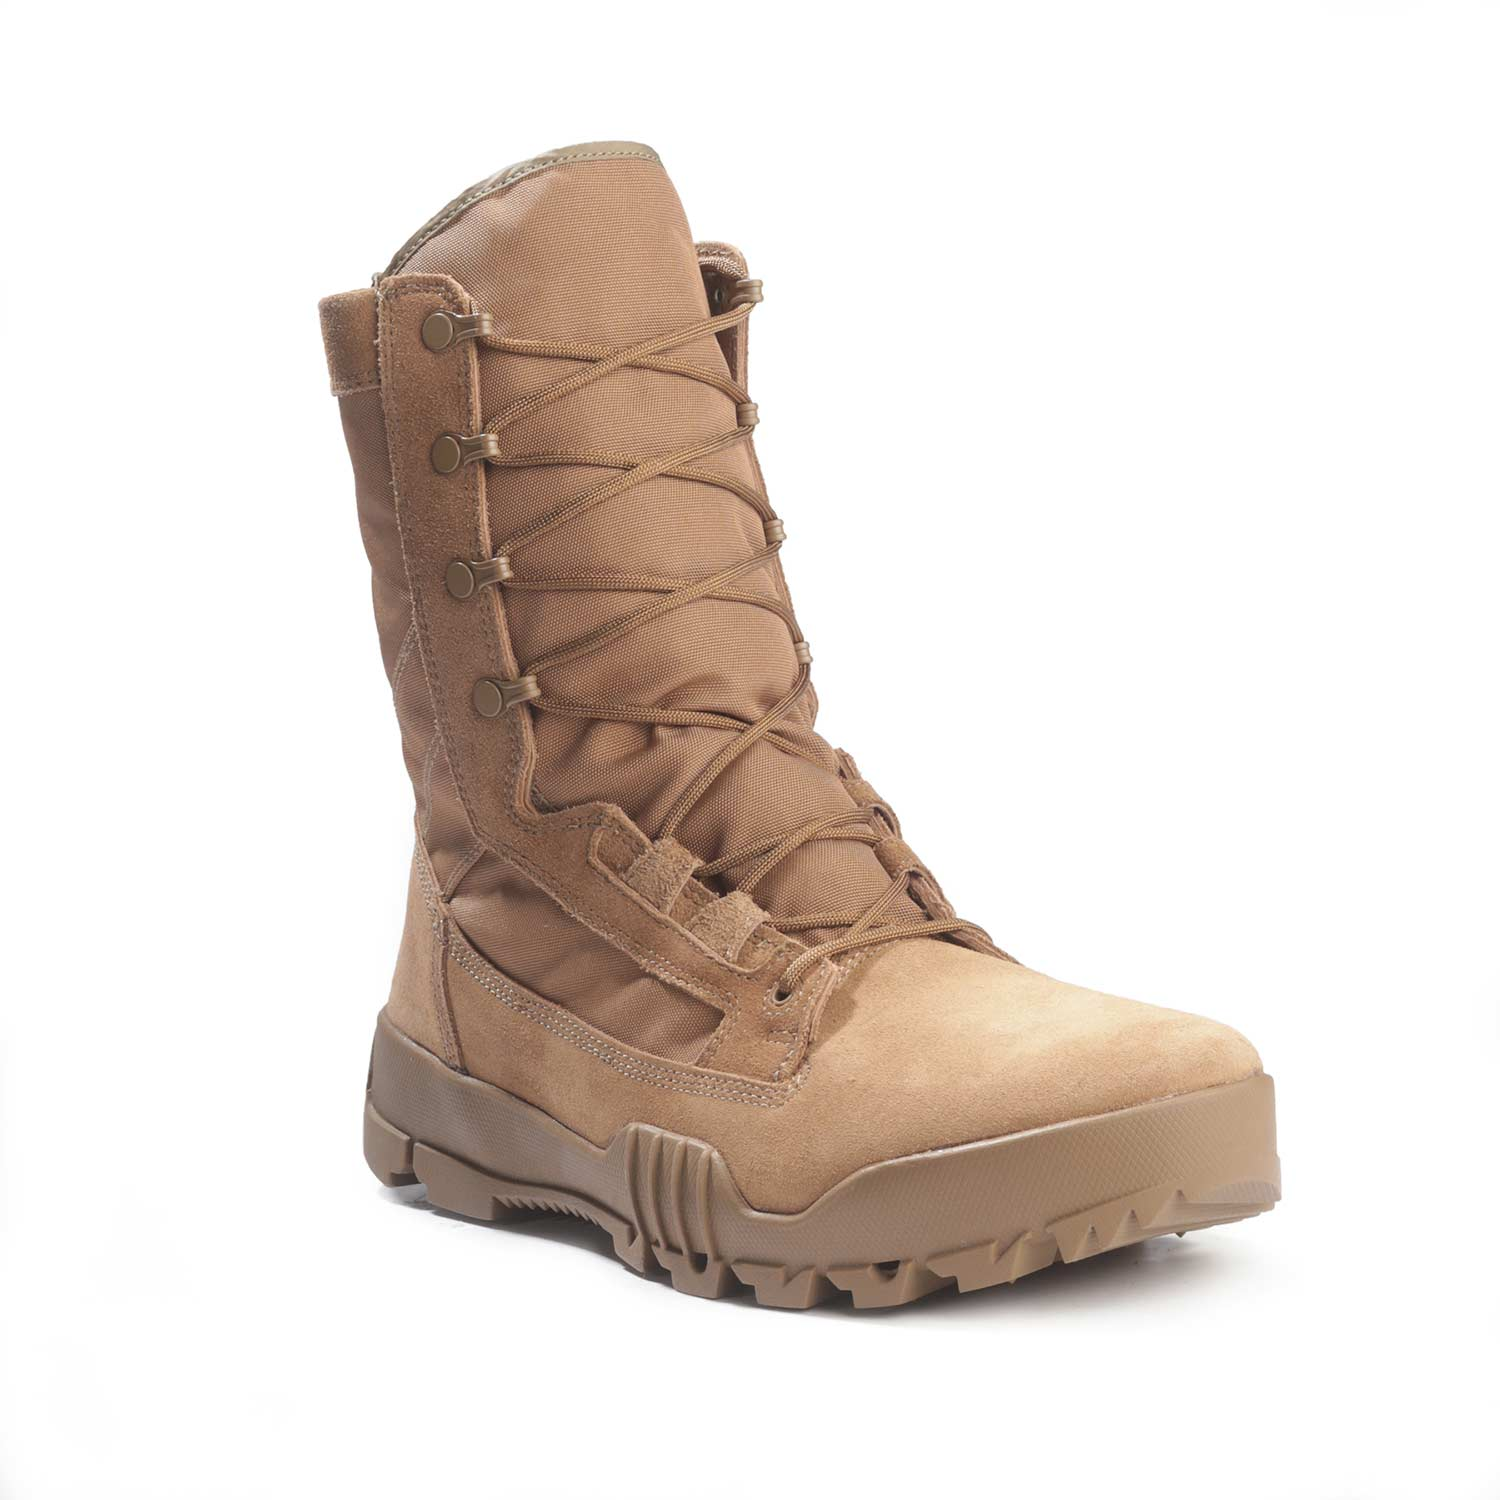 "Nike SFB Jungle 8"" Leather Boot (Coyote Brown)"